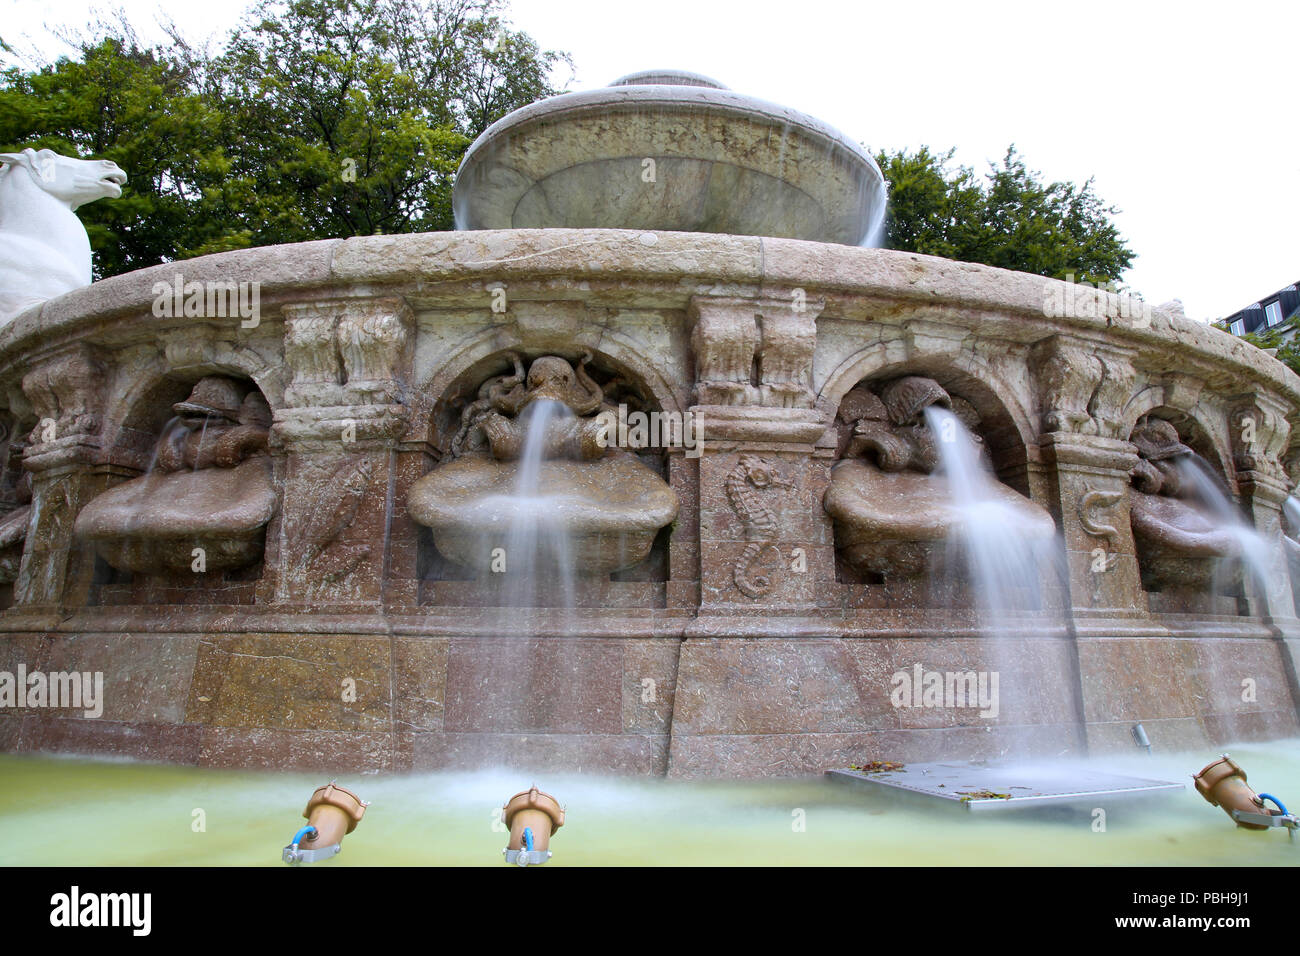 The Wittelsbacher fountain at the Lenbachplatz in Munich, Germany - Stock Image